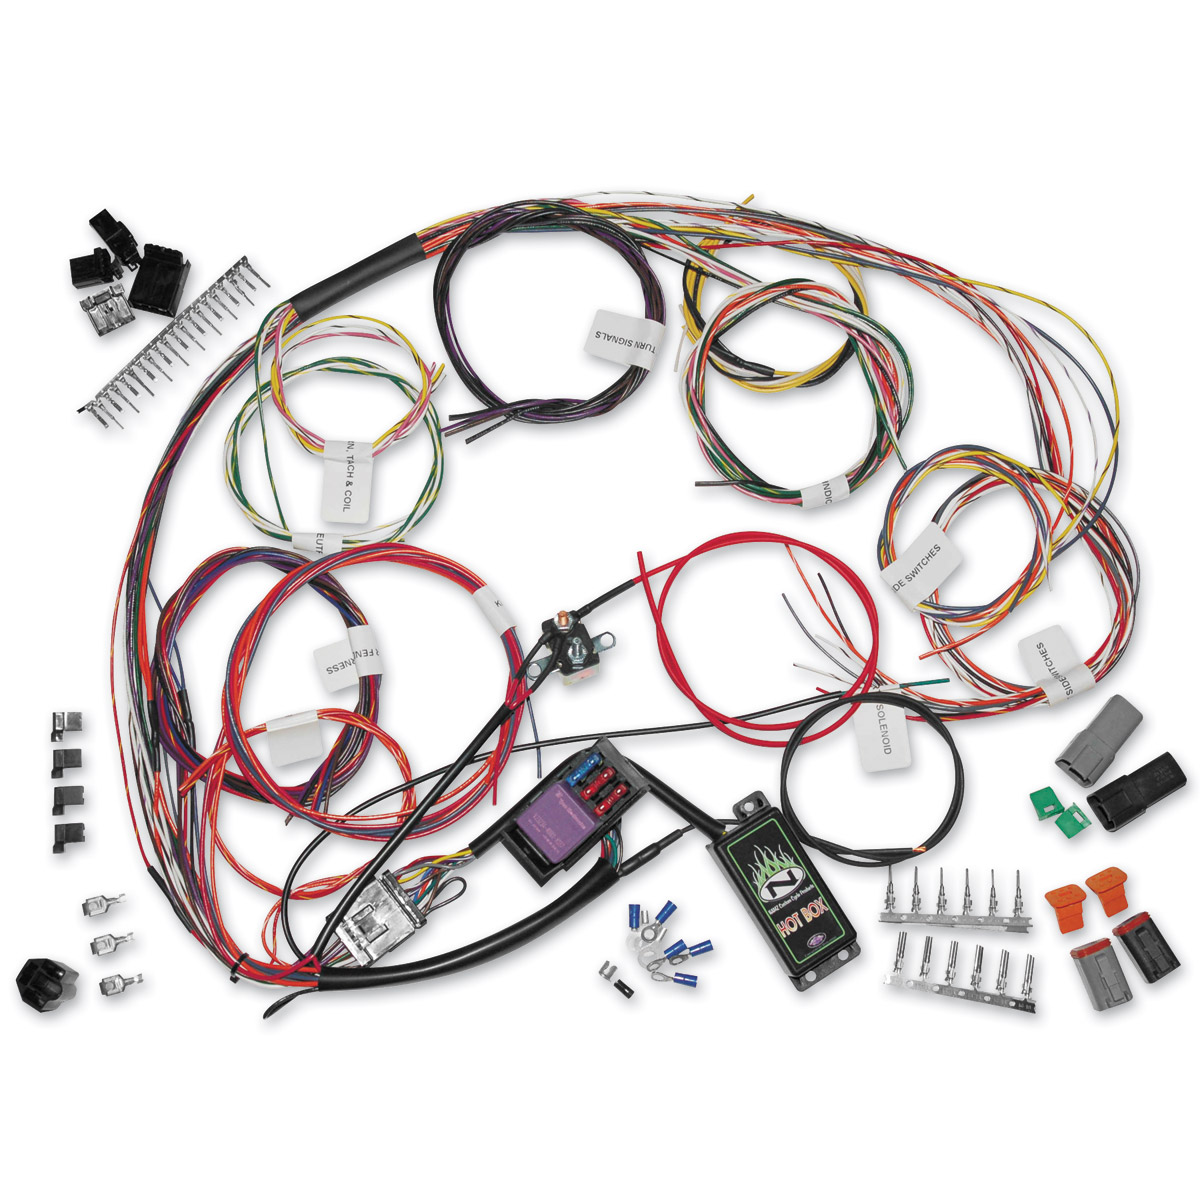 745 072_A namz custom cycle complete bike wiring harness kit 745 072 j&p harley wiring harness kits at creativeand.co